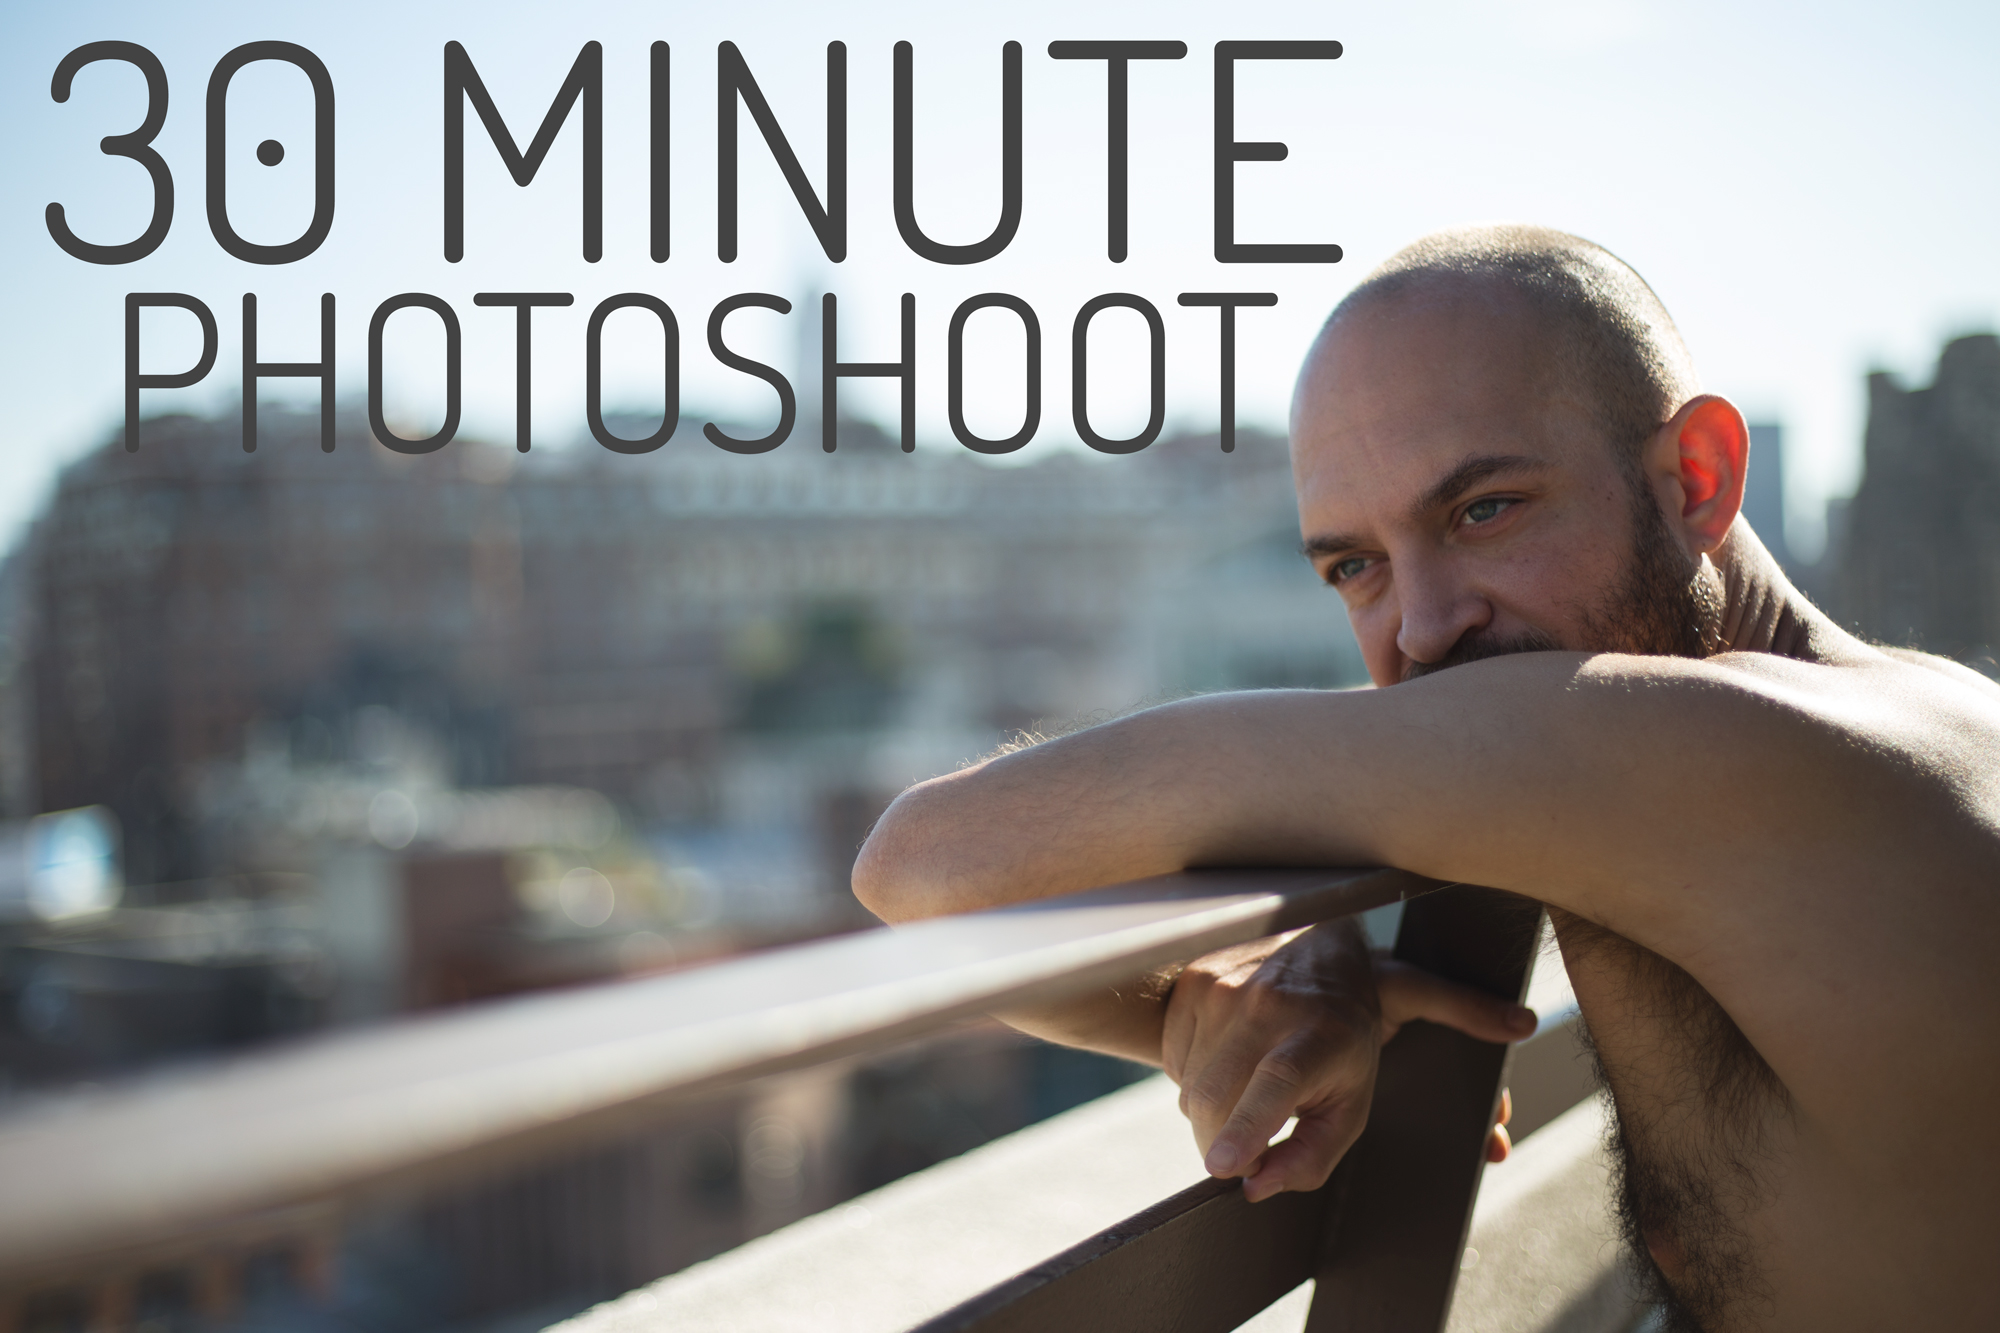 One of three in a thumbnail set for rendered photoshoot services on my e-commerce store.